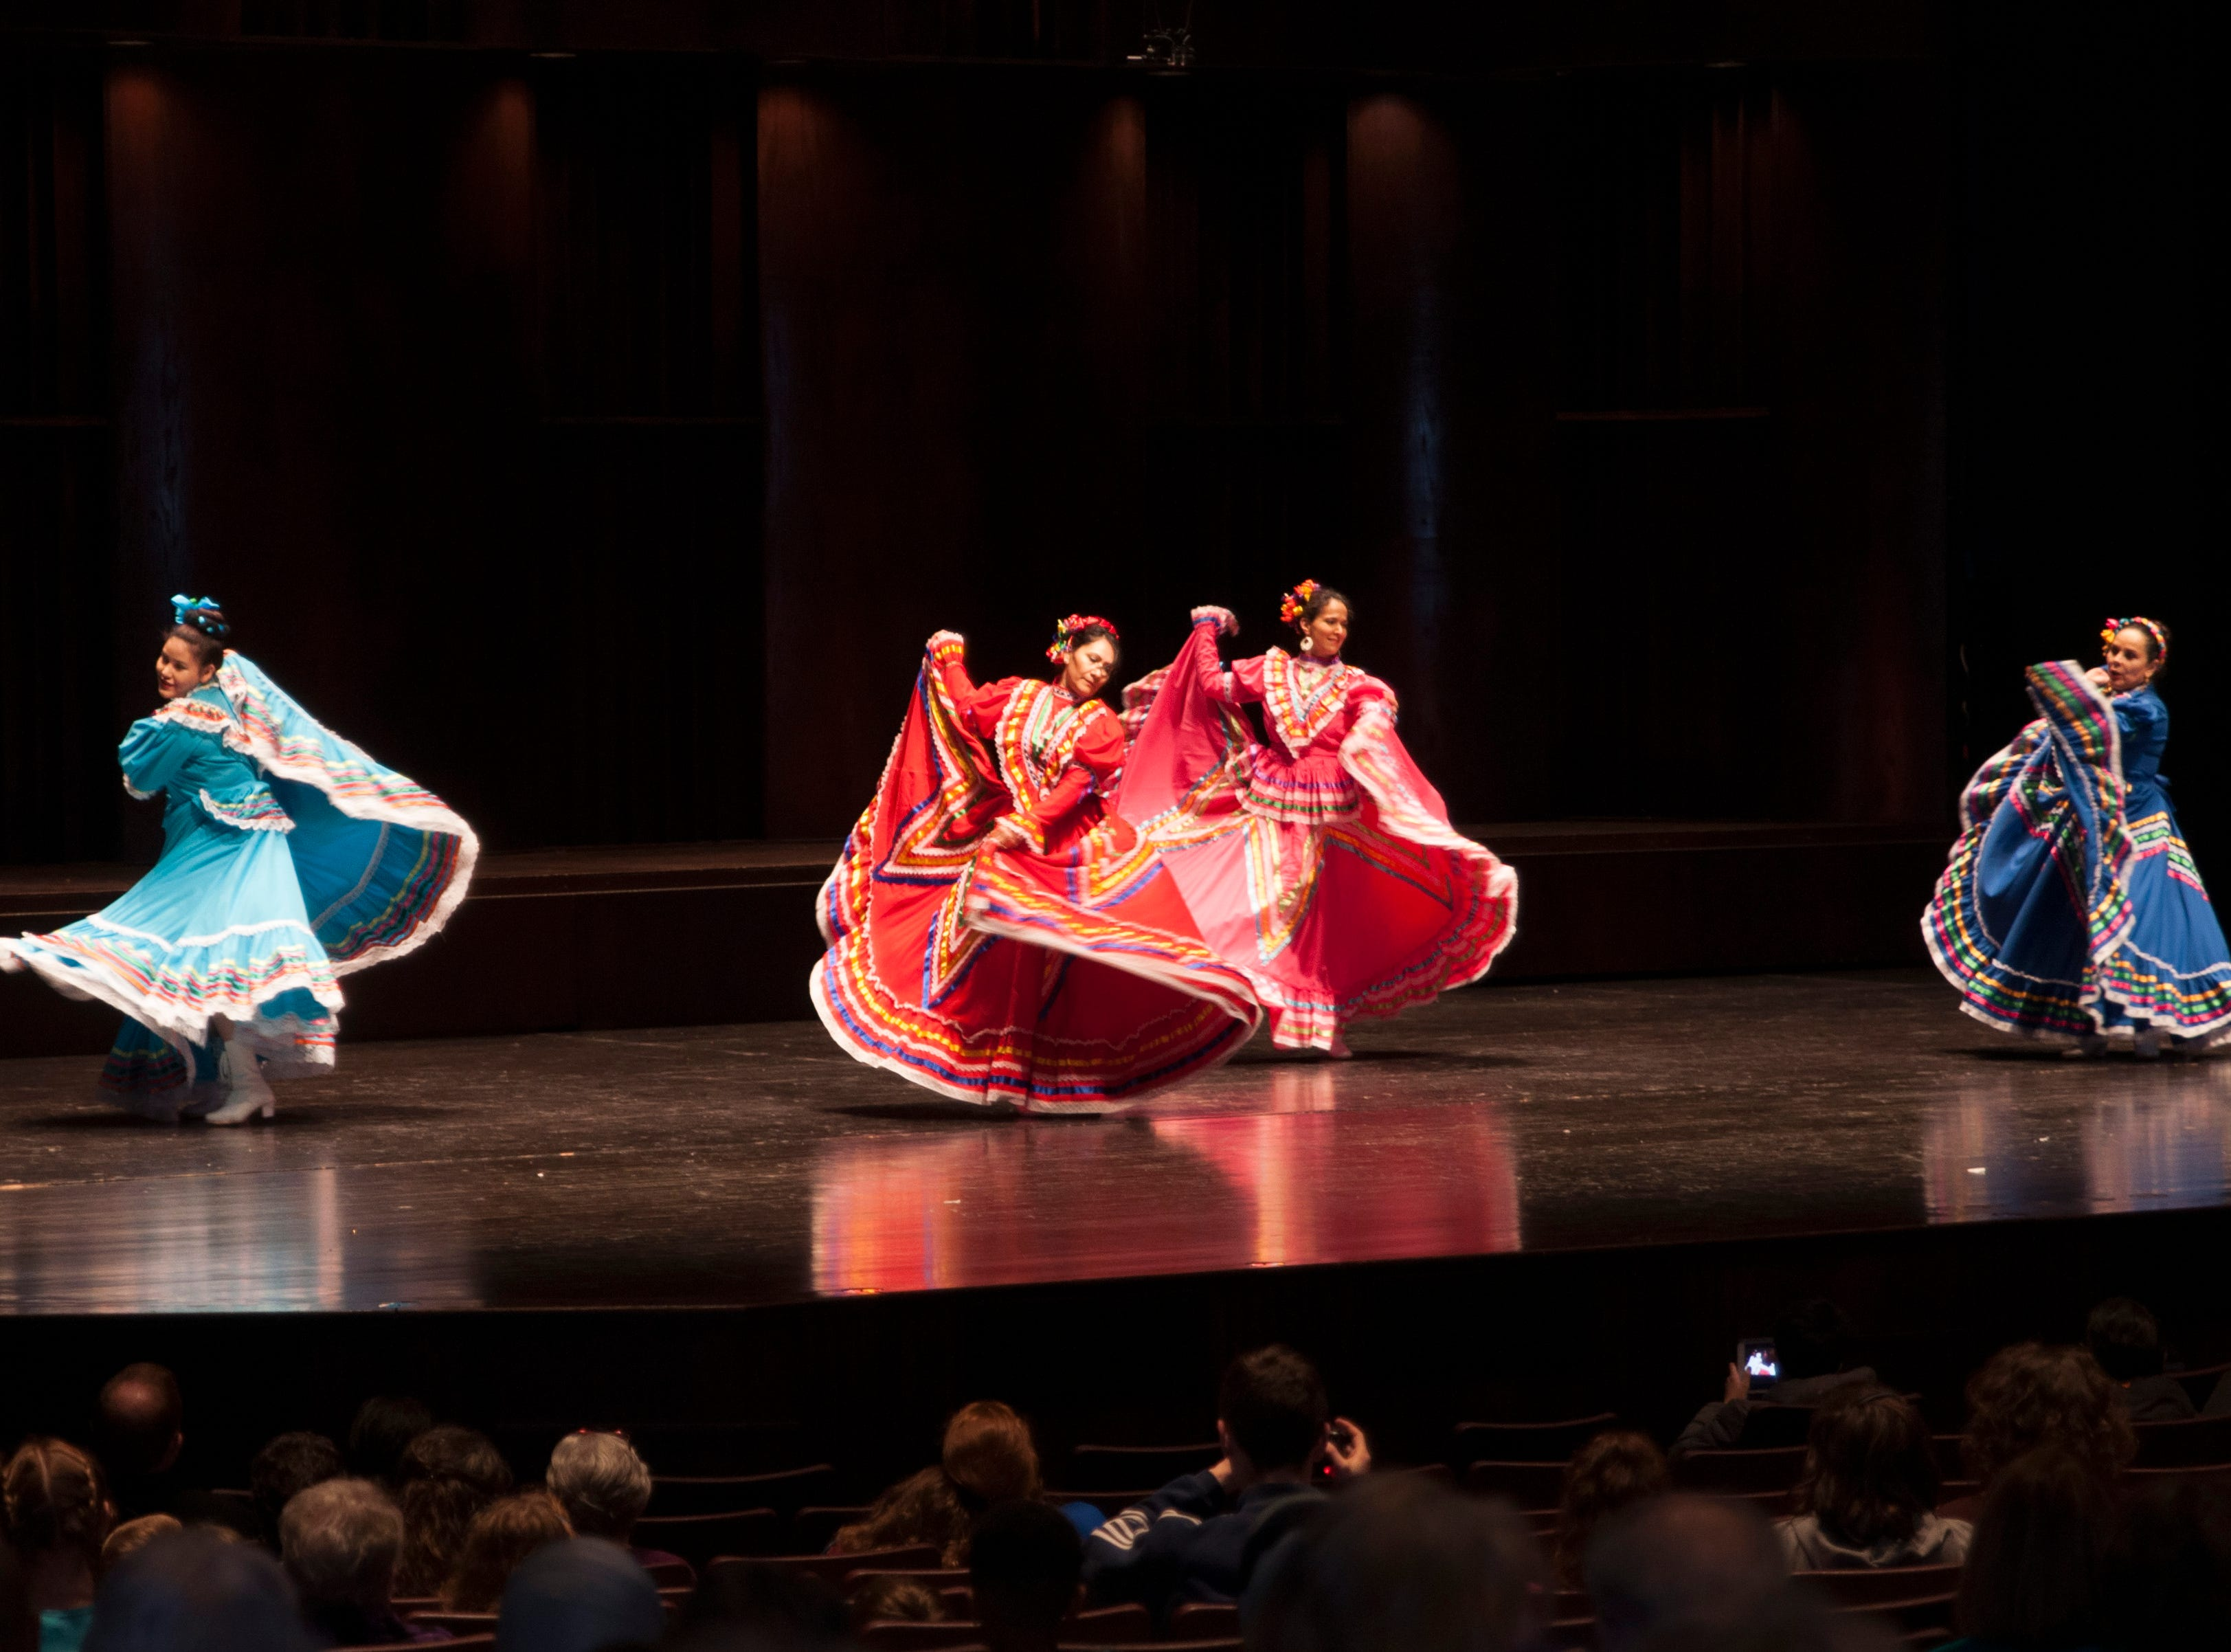 Scenes from the Springfield Multicultural Festival.